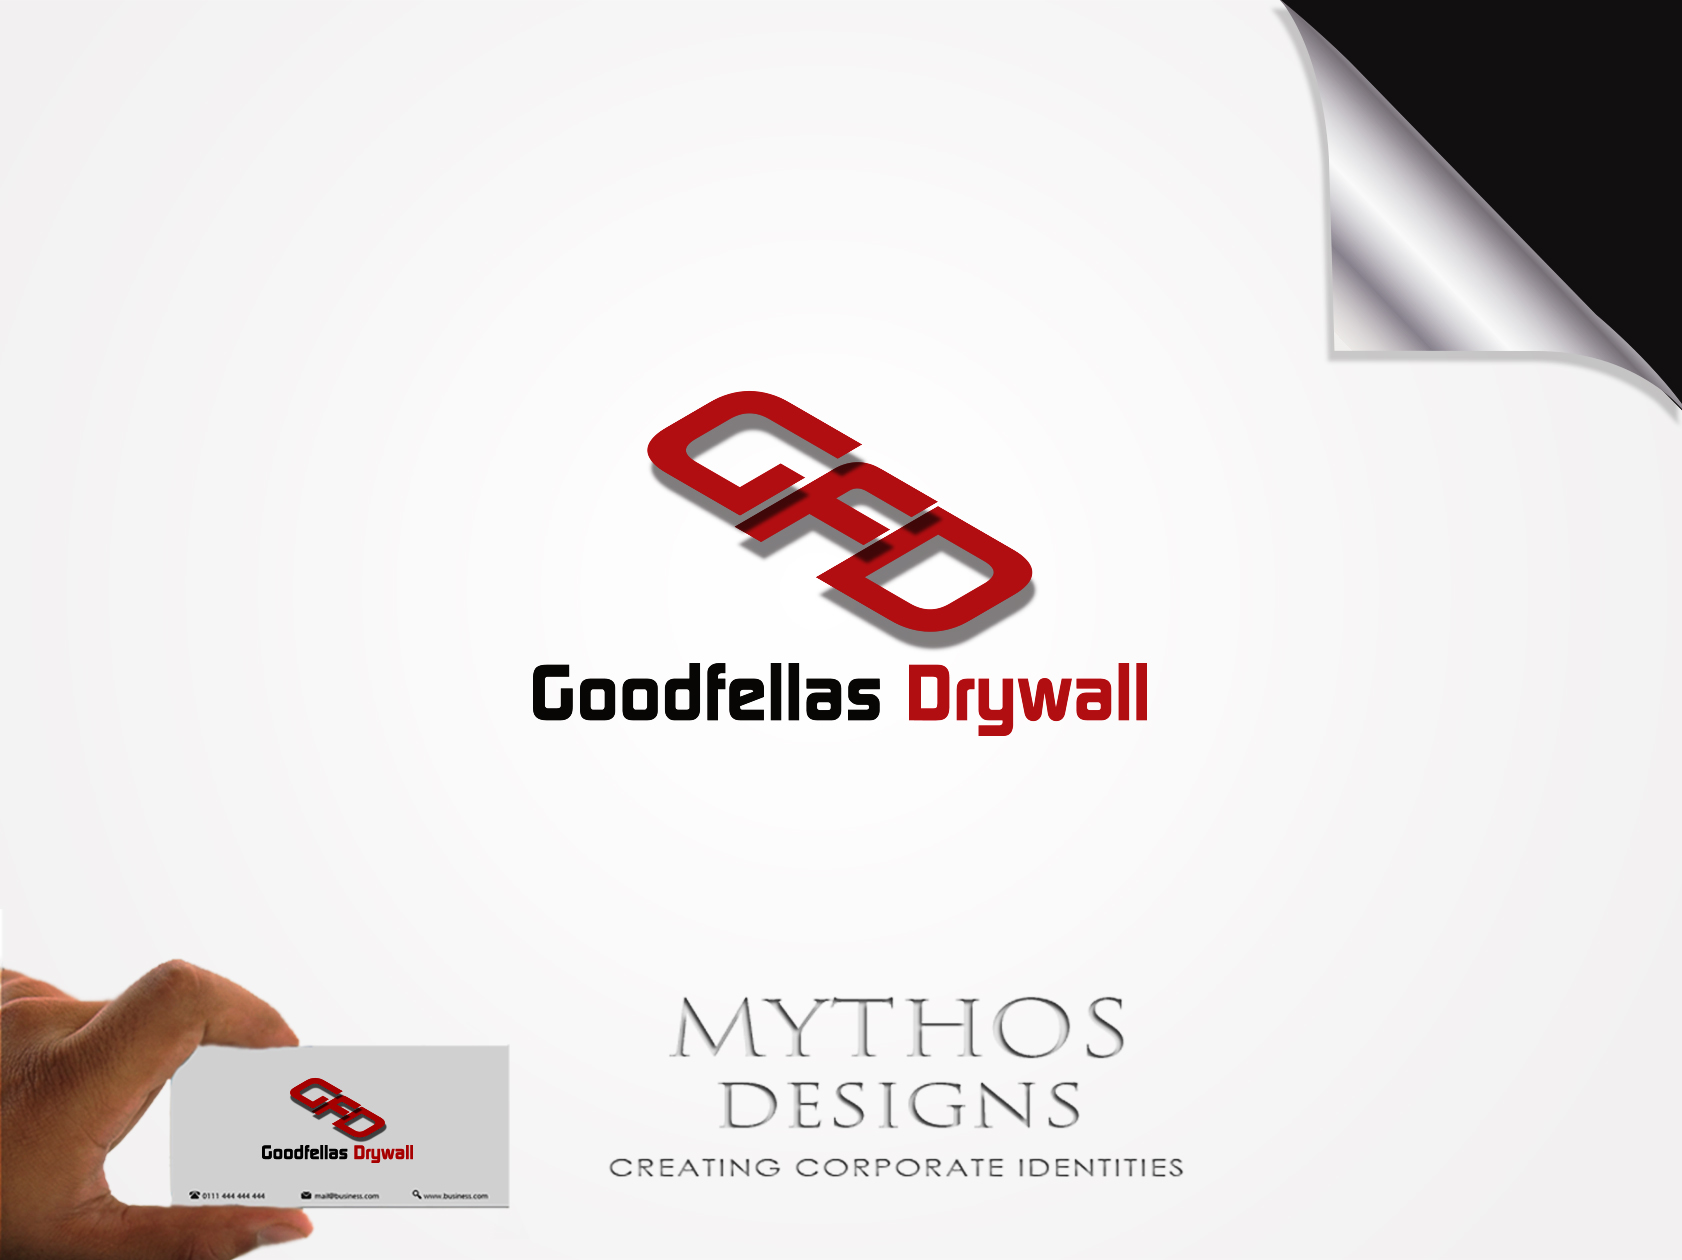 Logo Design by Mythos Designs - Entry No. 88 in the Logo Design Contest Creative Logo Design for Goodfellas Drywall.